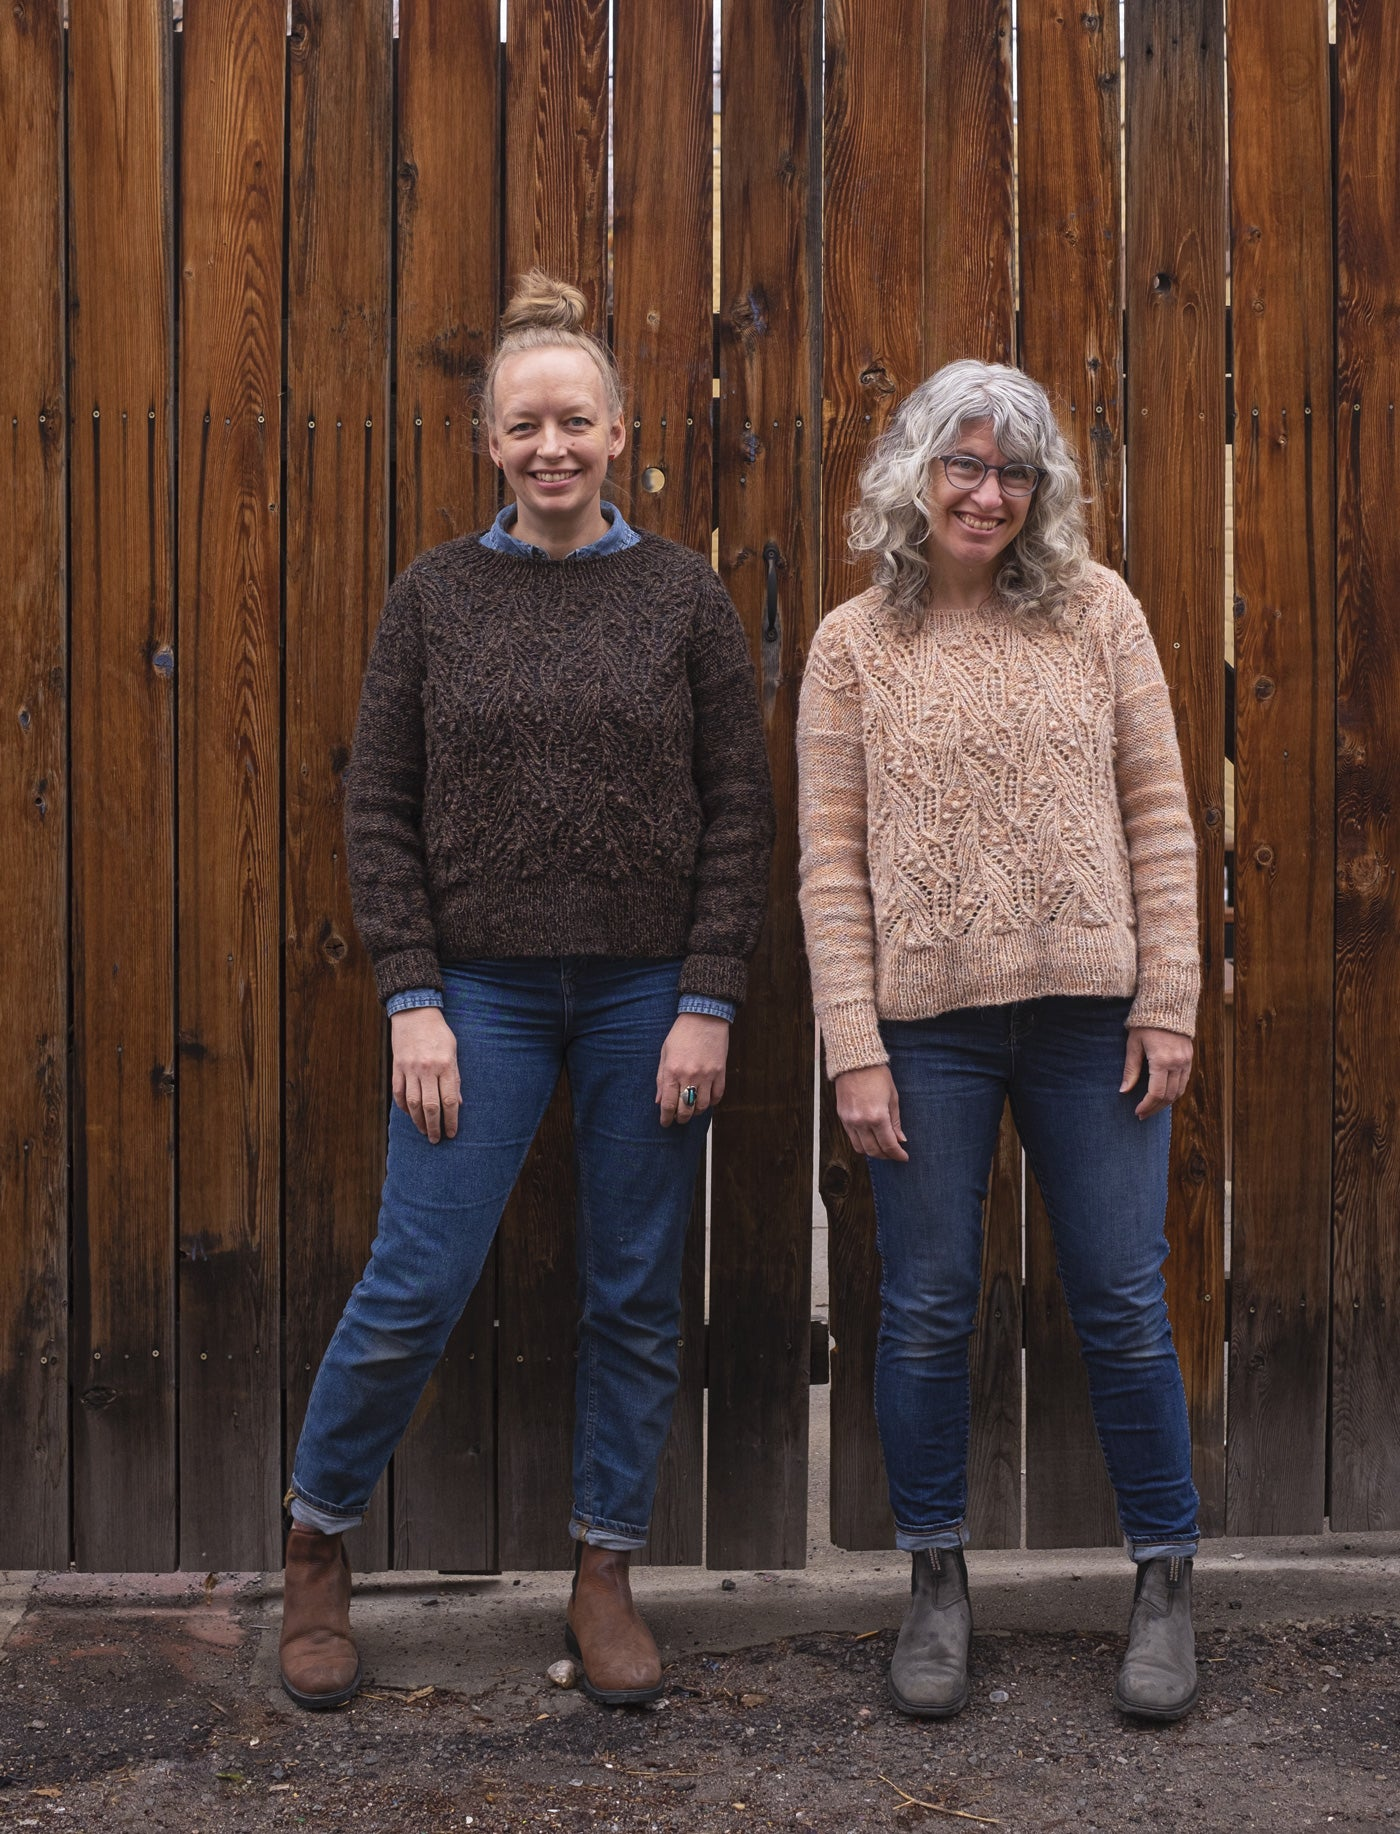 Amber and Jaime stand outside in front of a tall wooden fence on a rare damp day in Denver. They both wear their finished Atlantica pullovers: Amber's in a deep brown marl, and Jaime's in a pale peachy marl.